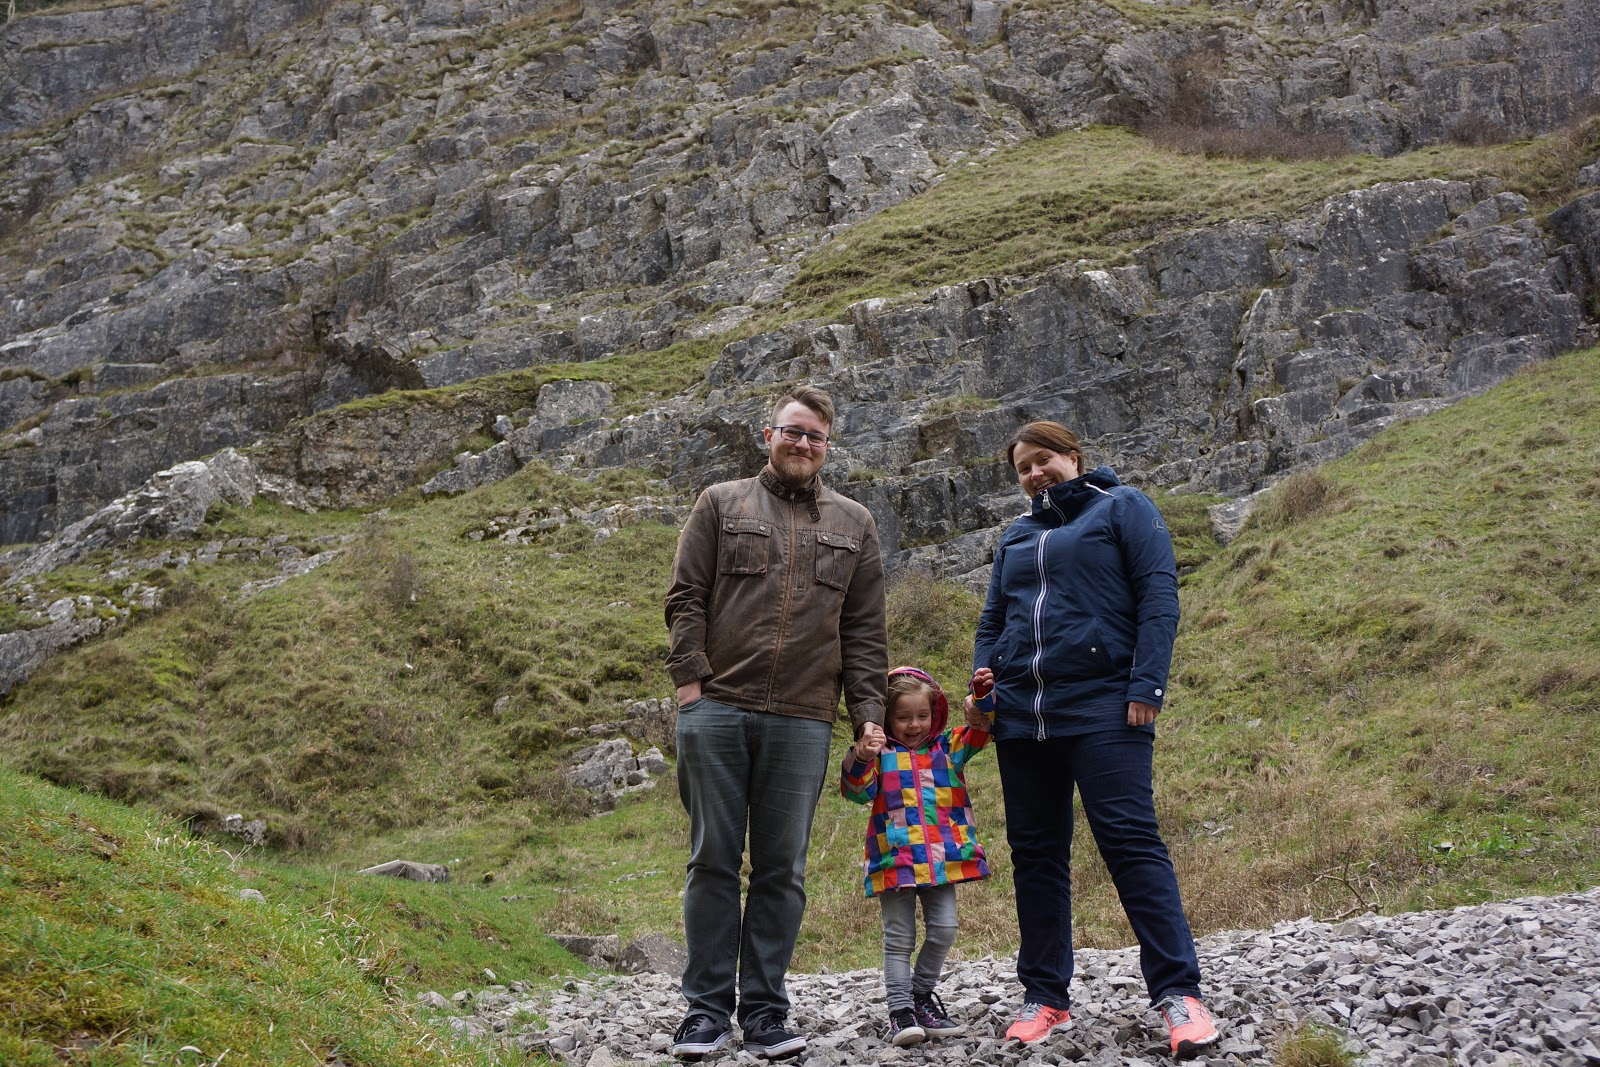 Family picture at Cheddar Gorges